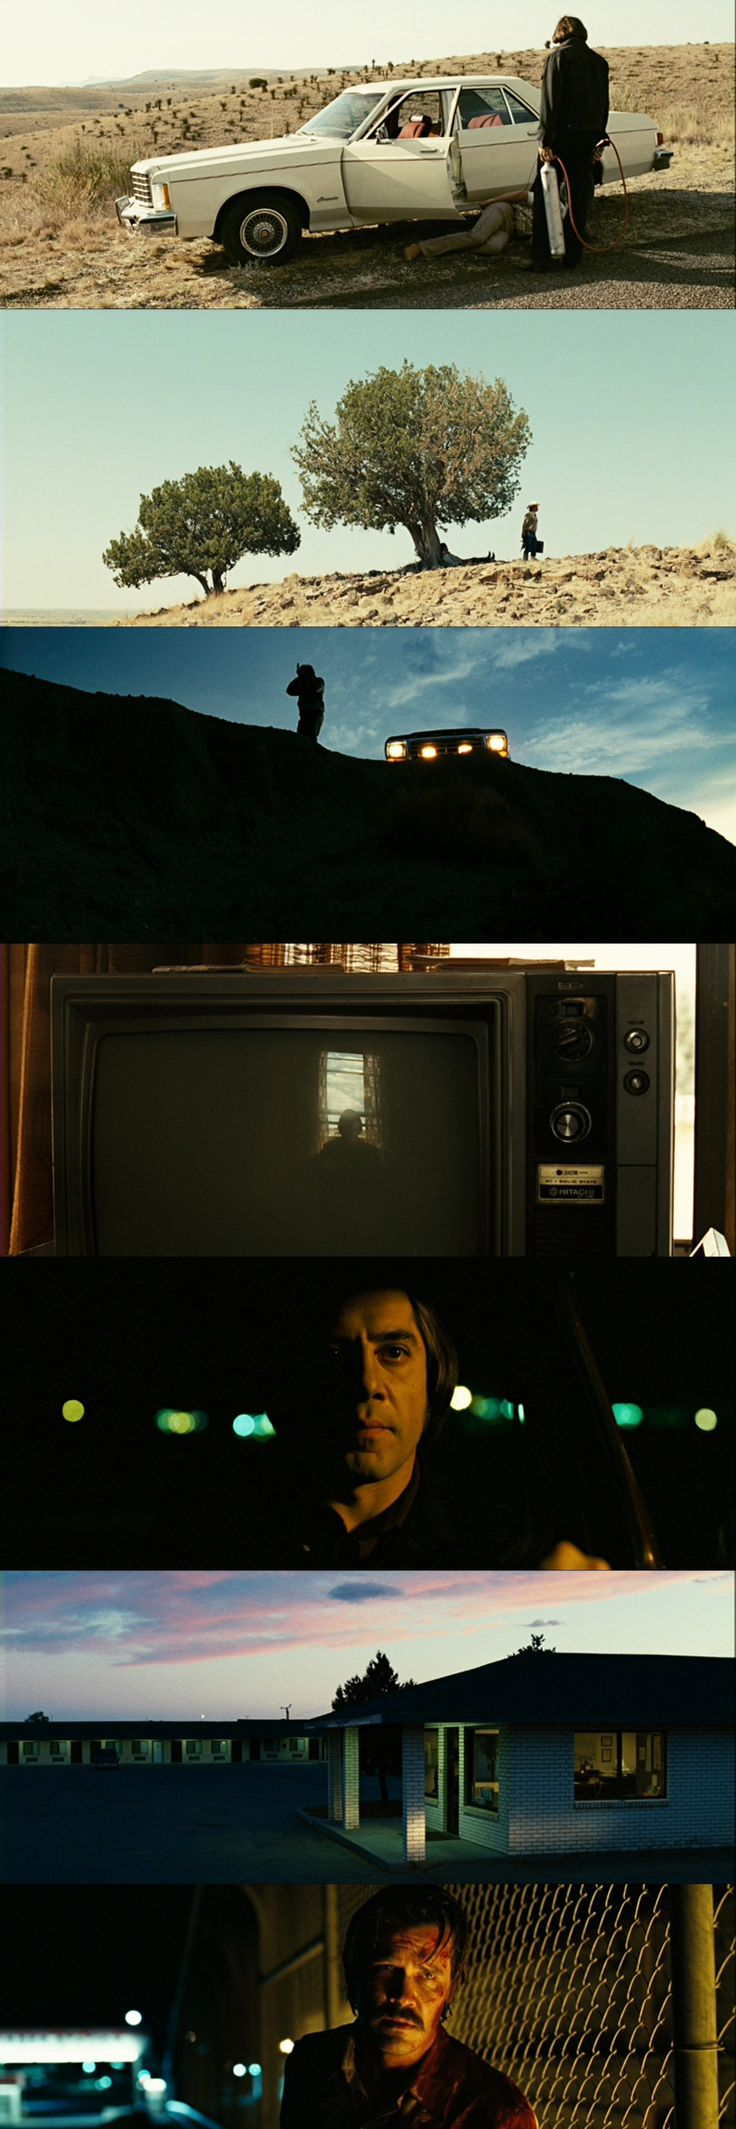 17 best ideas about old men old women portraits no country for old men cinematography by roger deakins directed by ethan coen